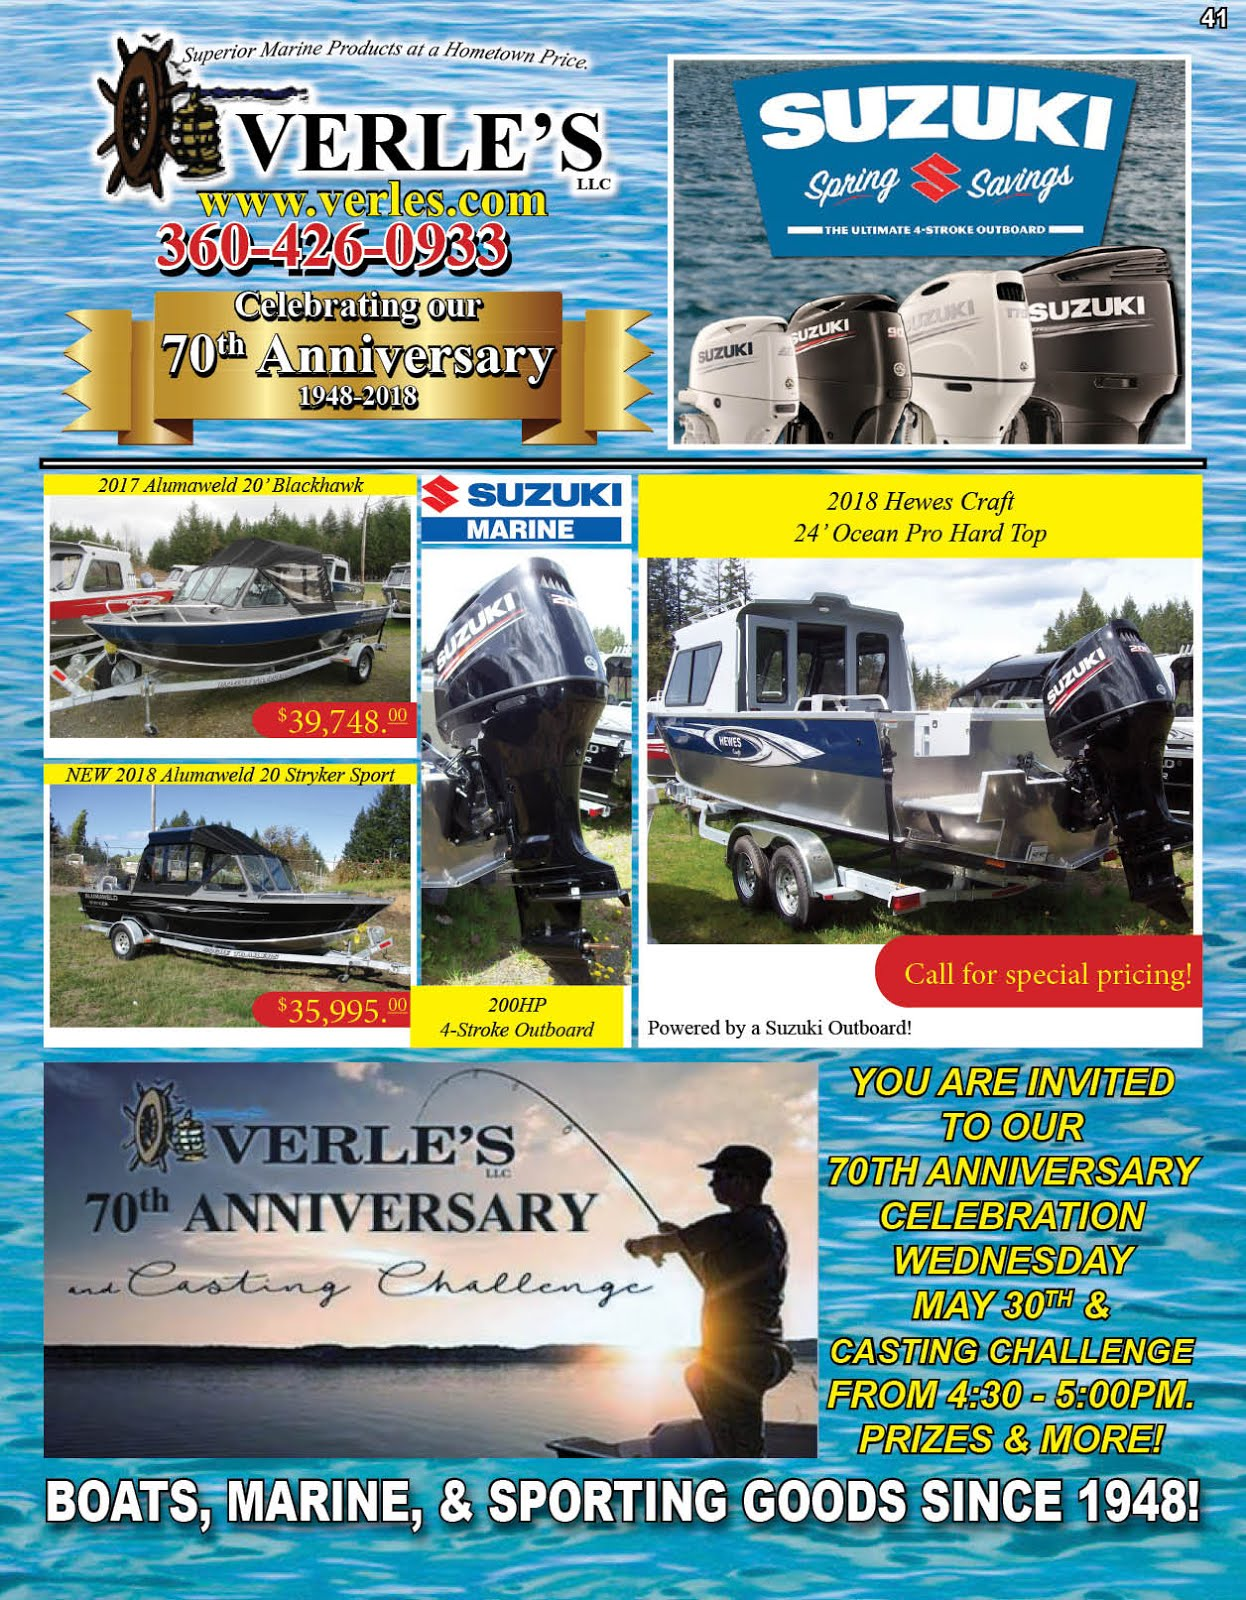 Verles llc. Celebrating Our 70th Anniversary! Specials On Boats Marine Gear Tackle Guns Ammo!!